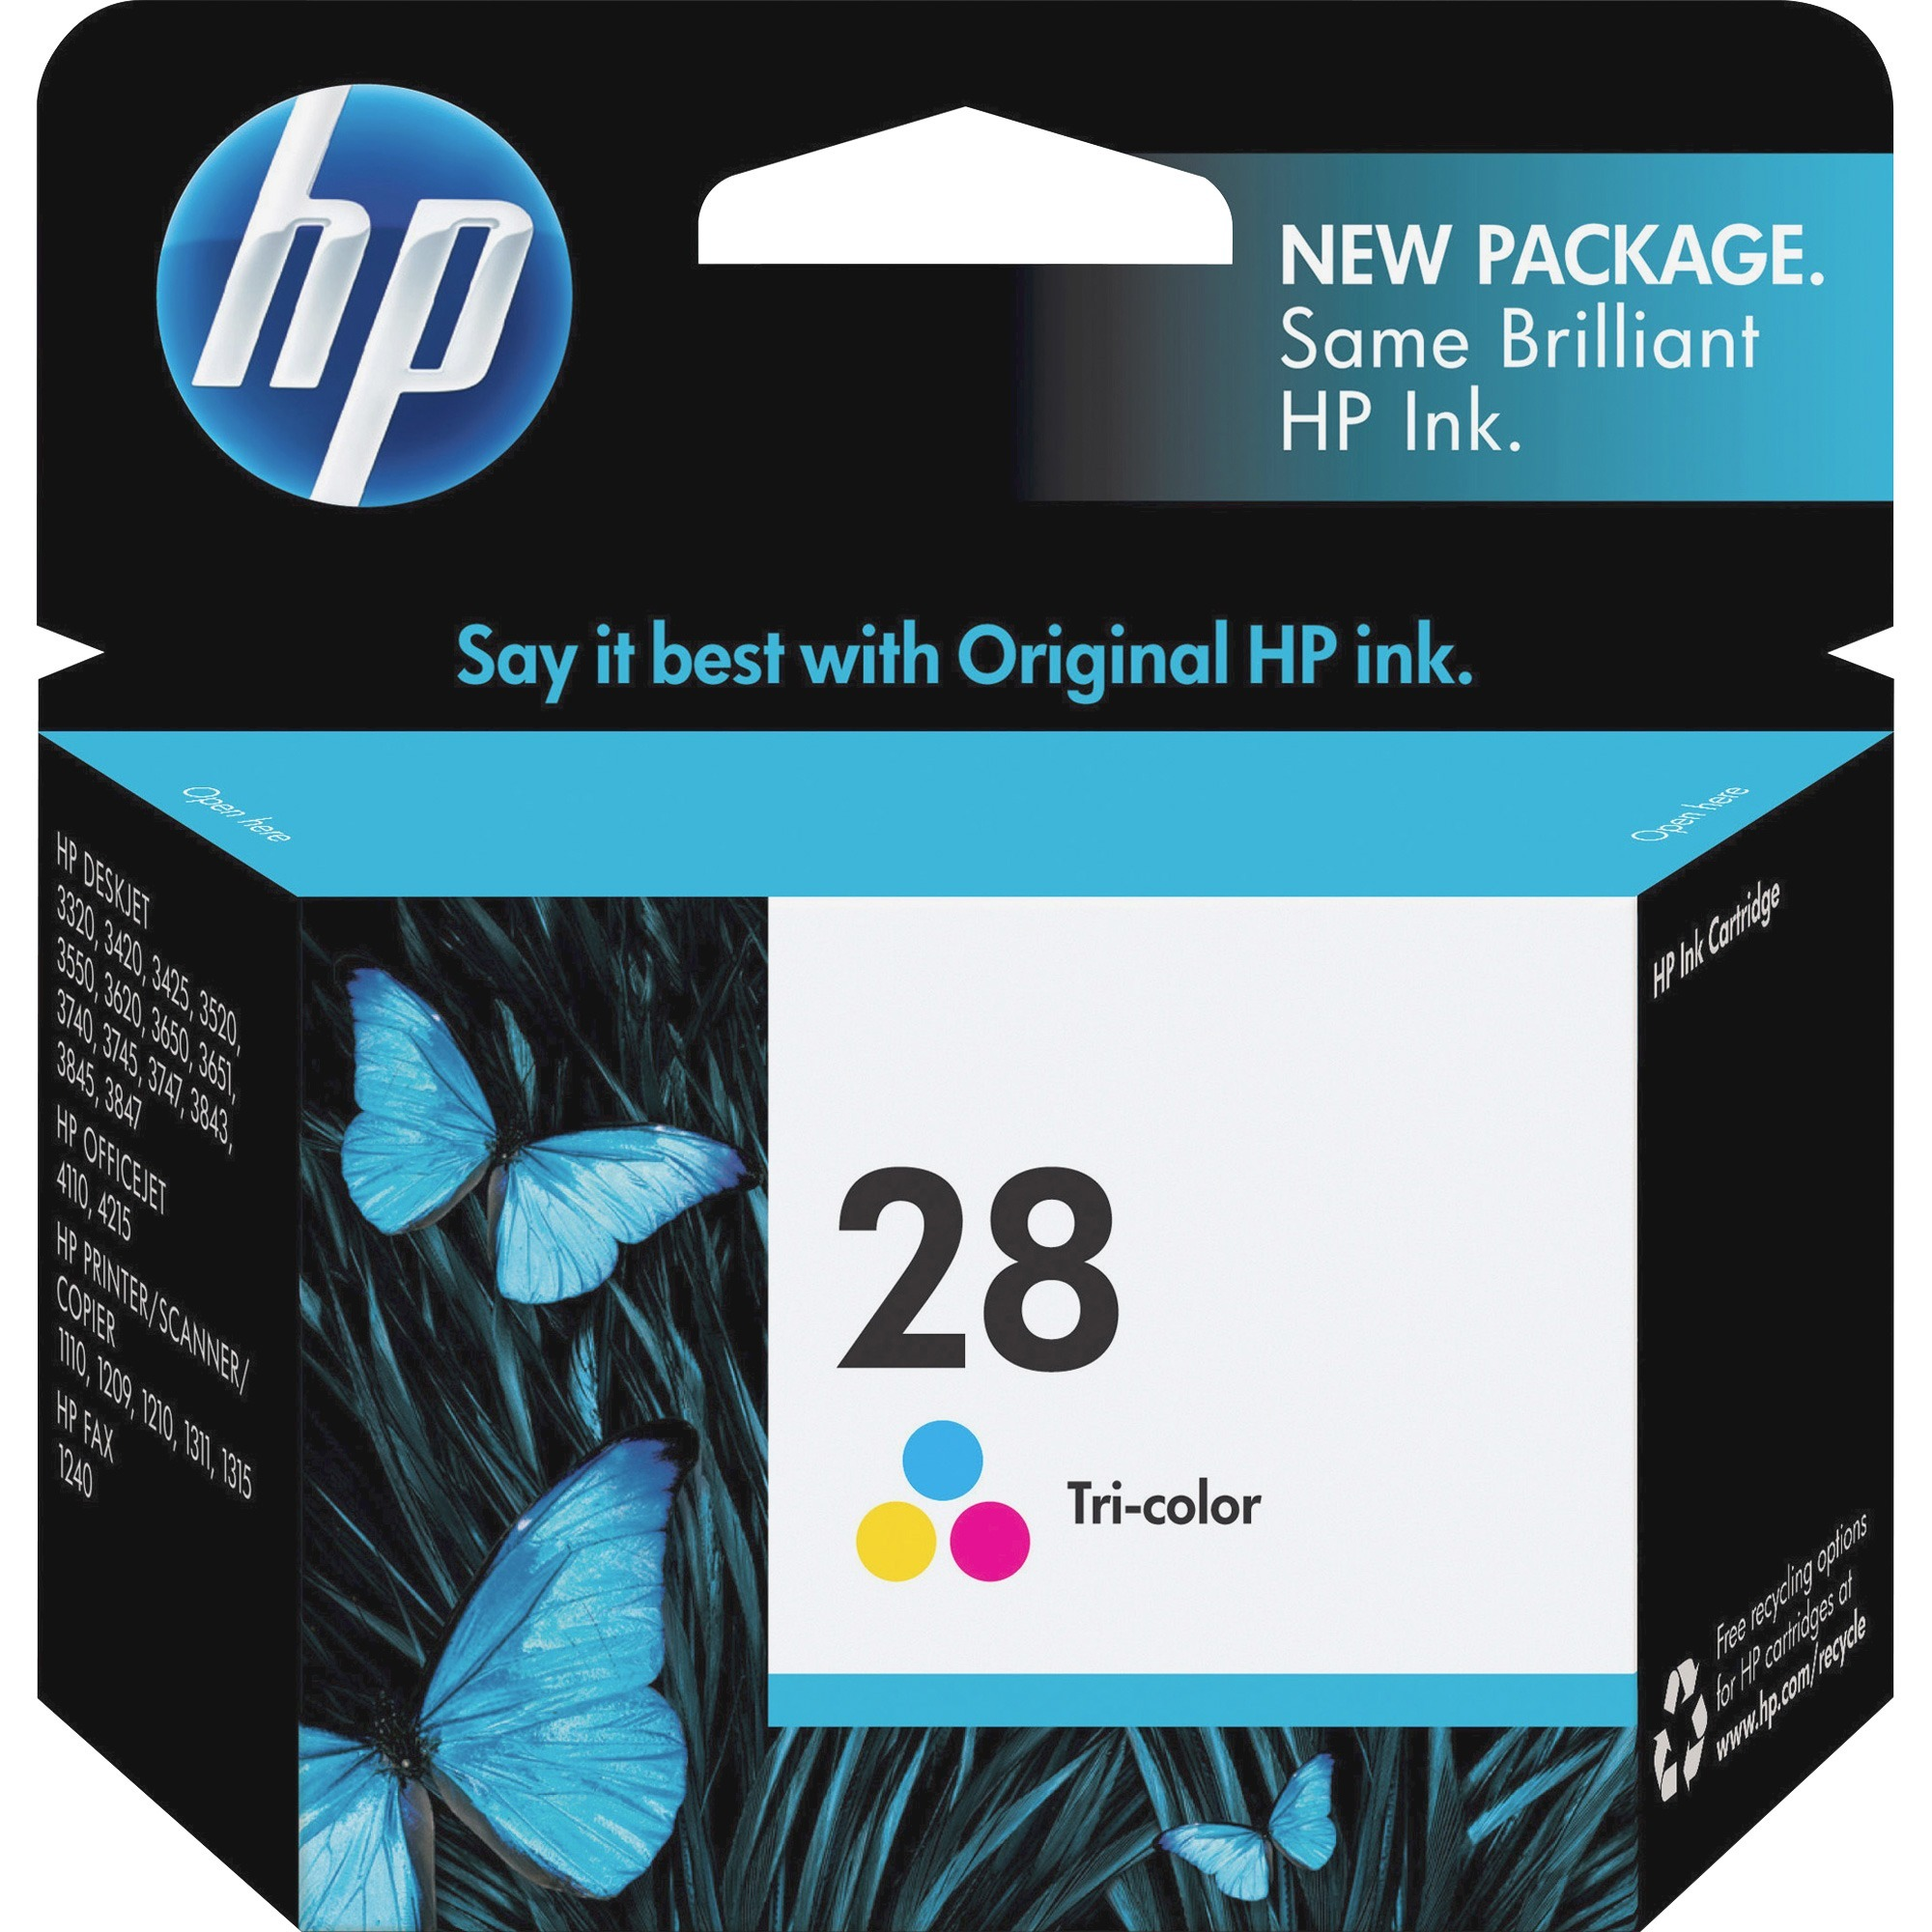 Hp m750 color printing cost per page - Zoom In